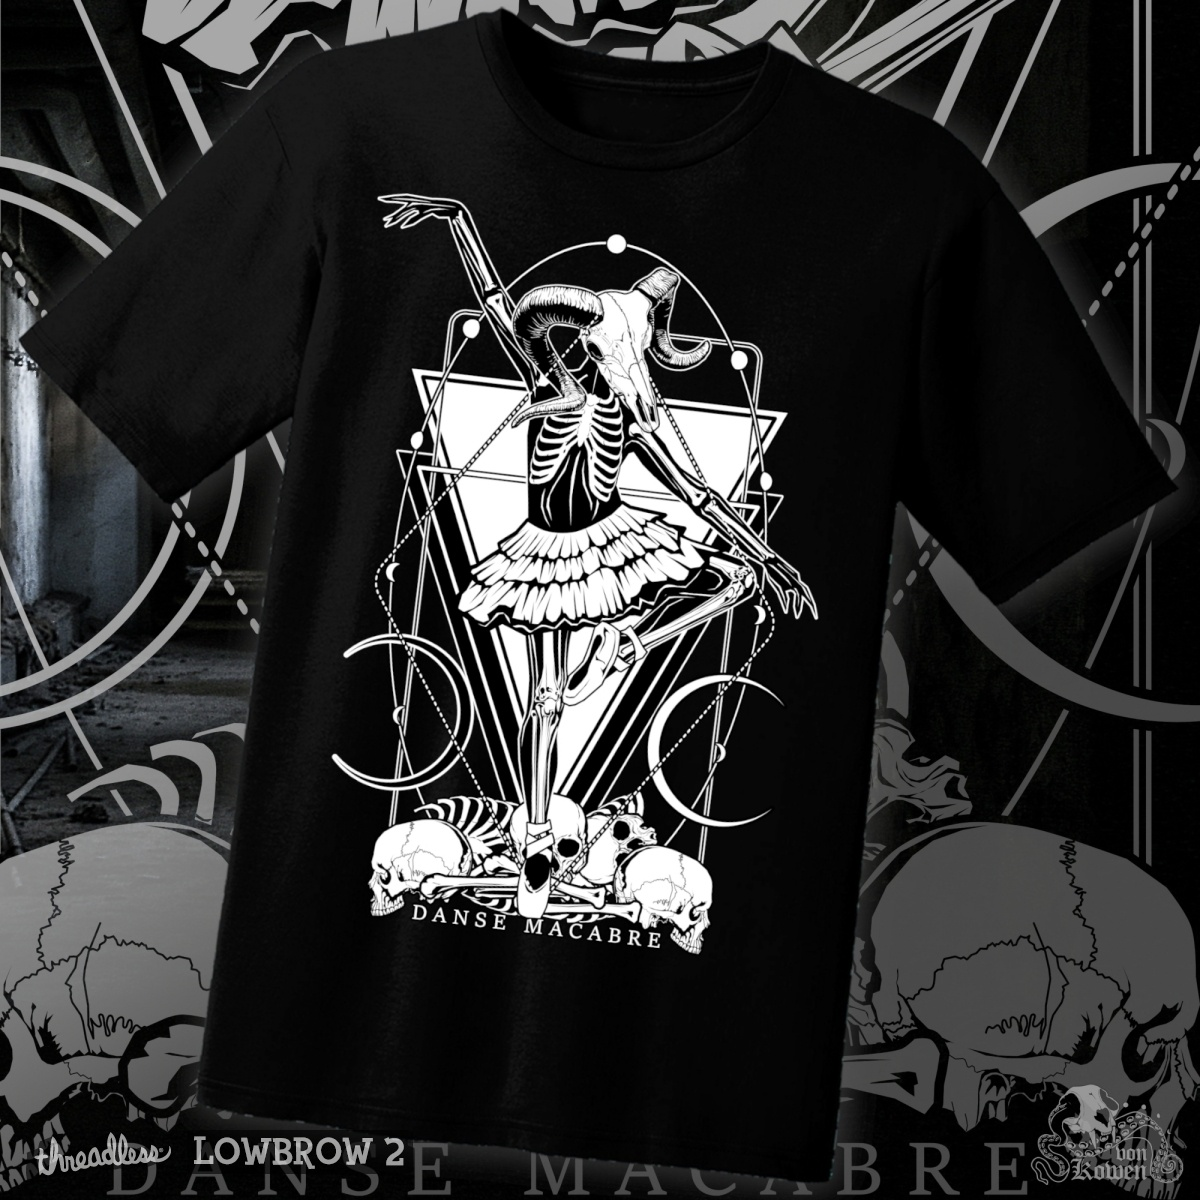 Danse Macabre, a cool t-shirt design